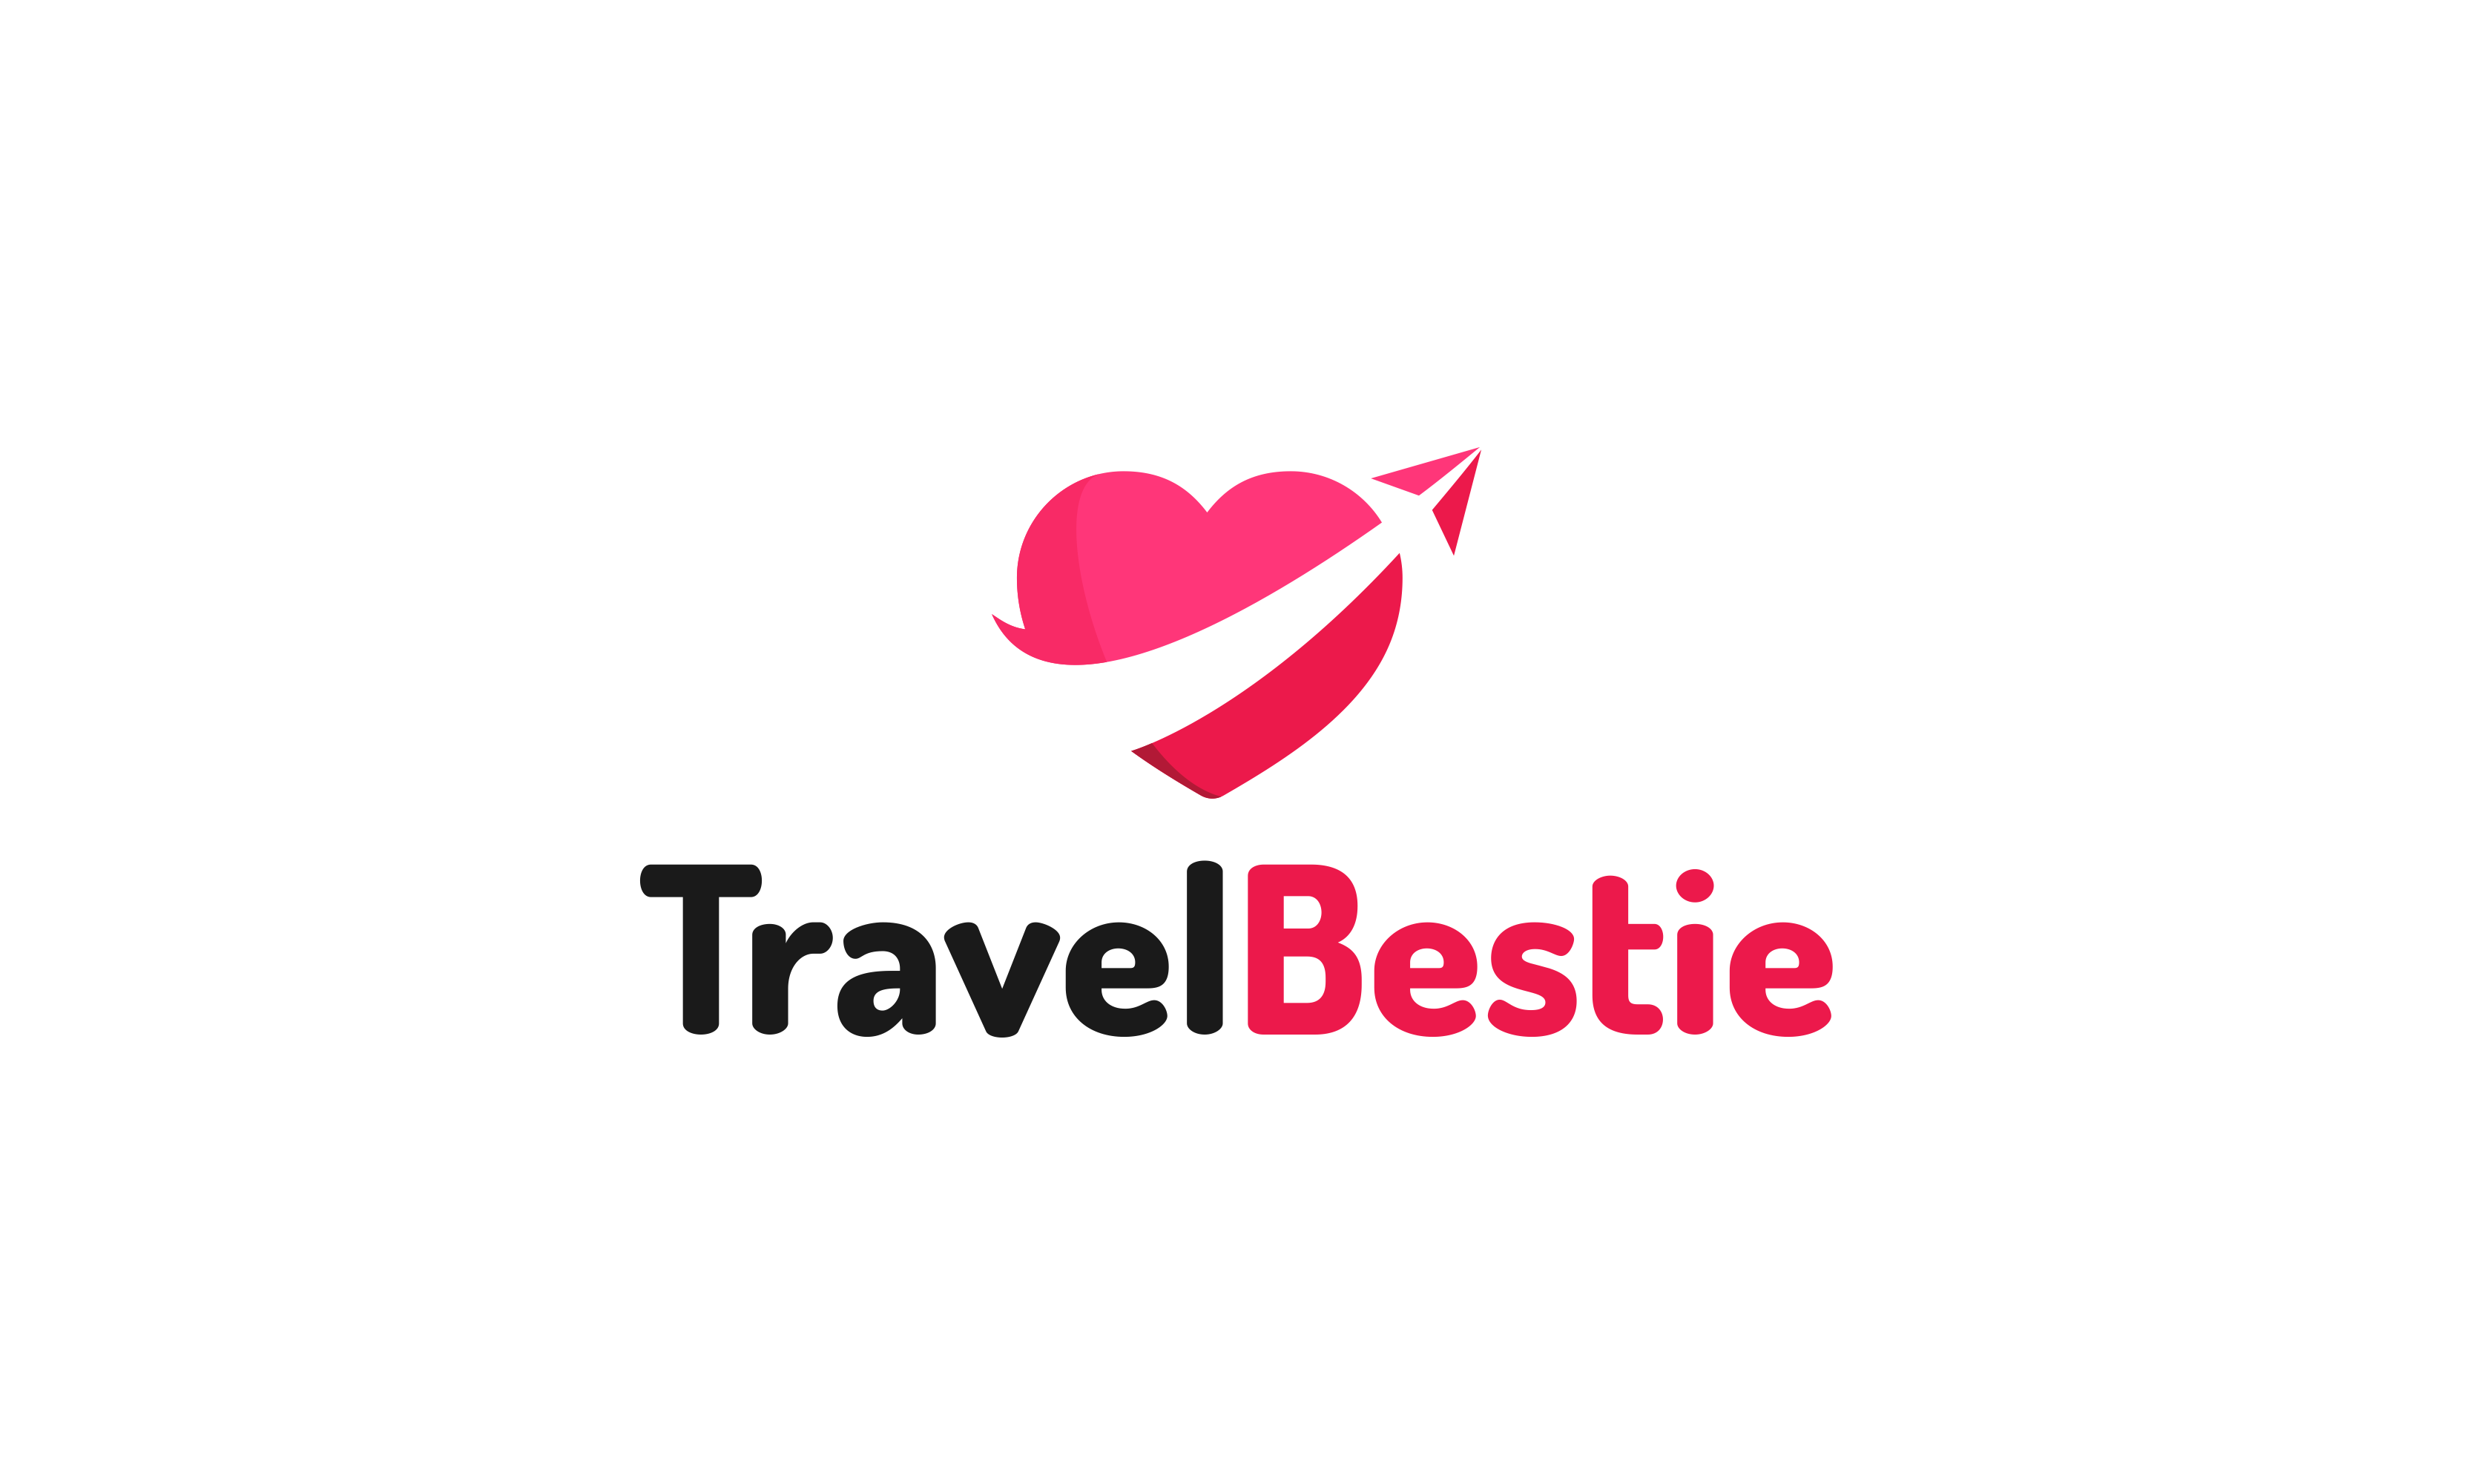 Travelbestie